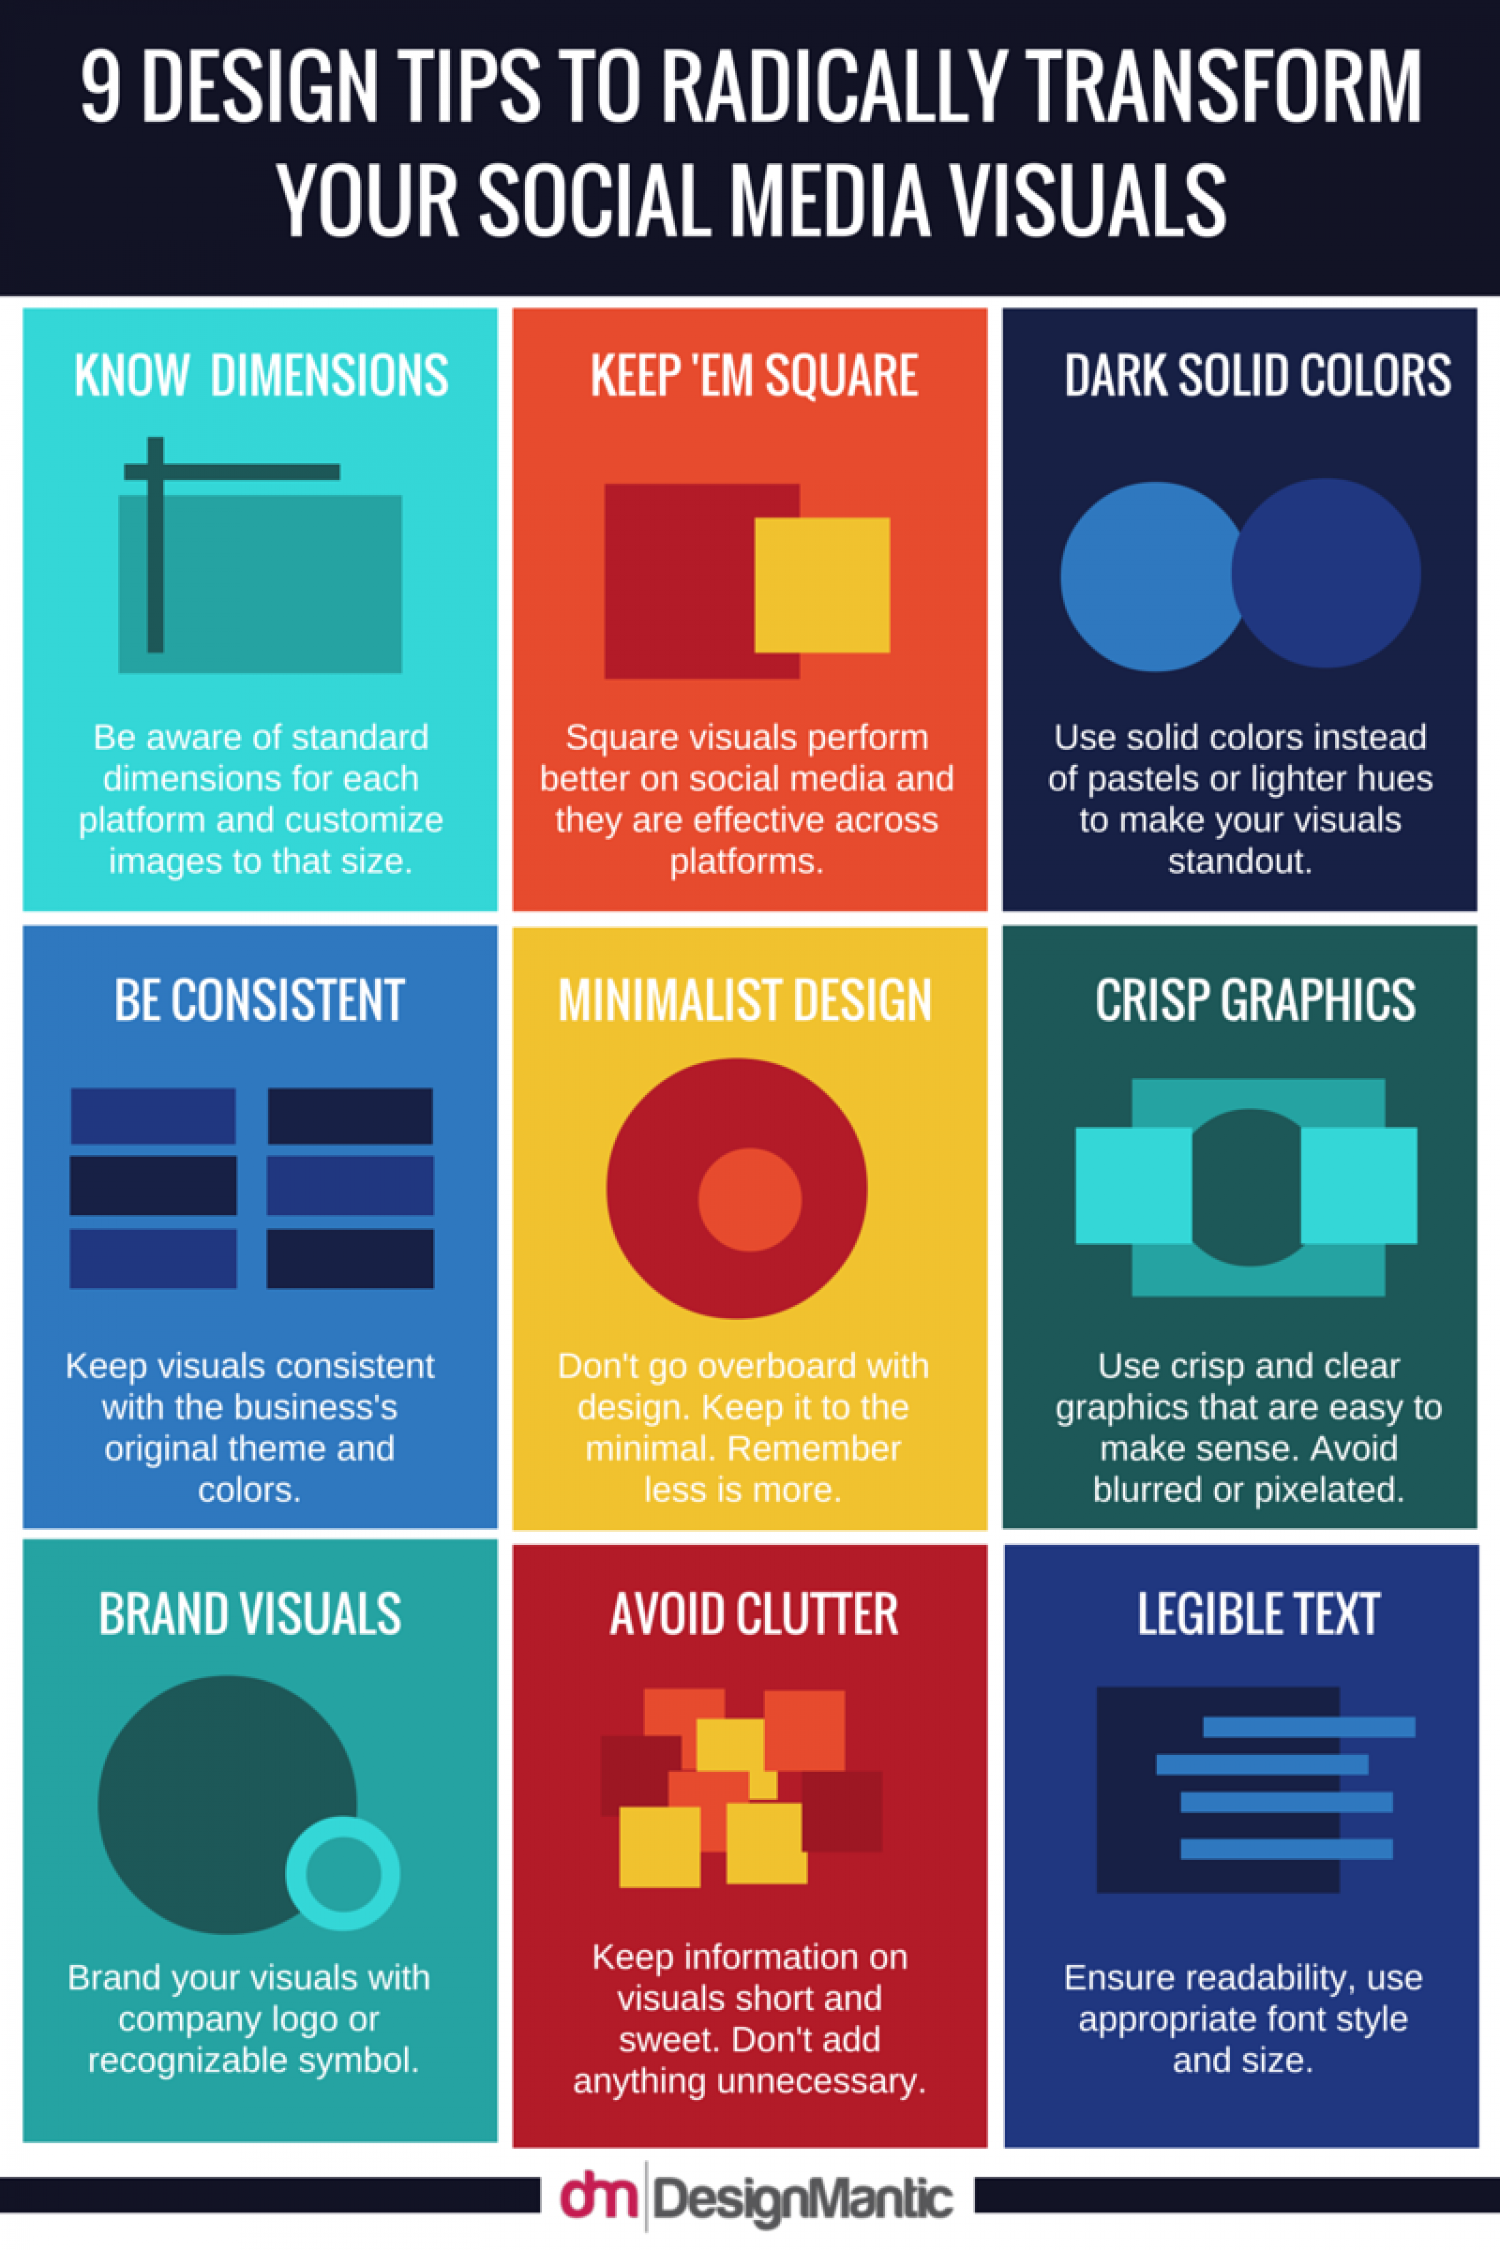 9 Design Tips To Radically Transform Your Social Media Visuals! Infographic